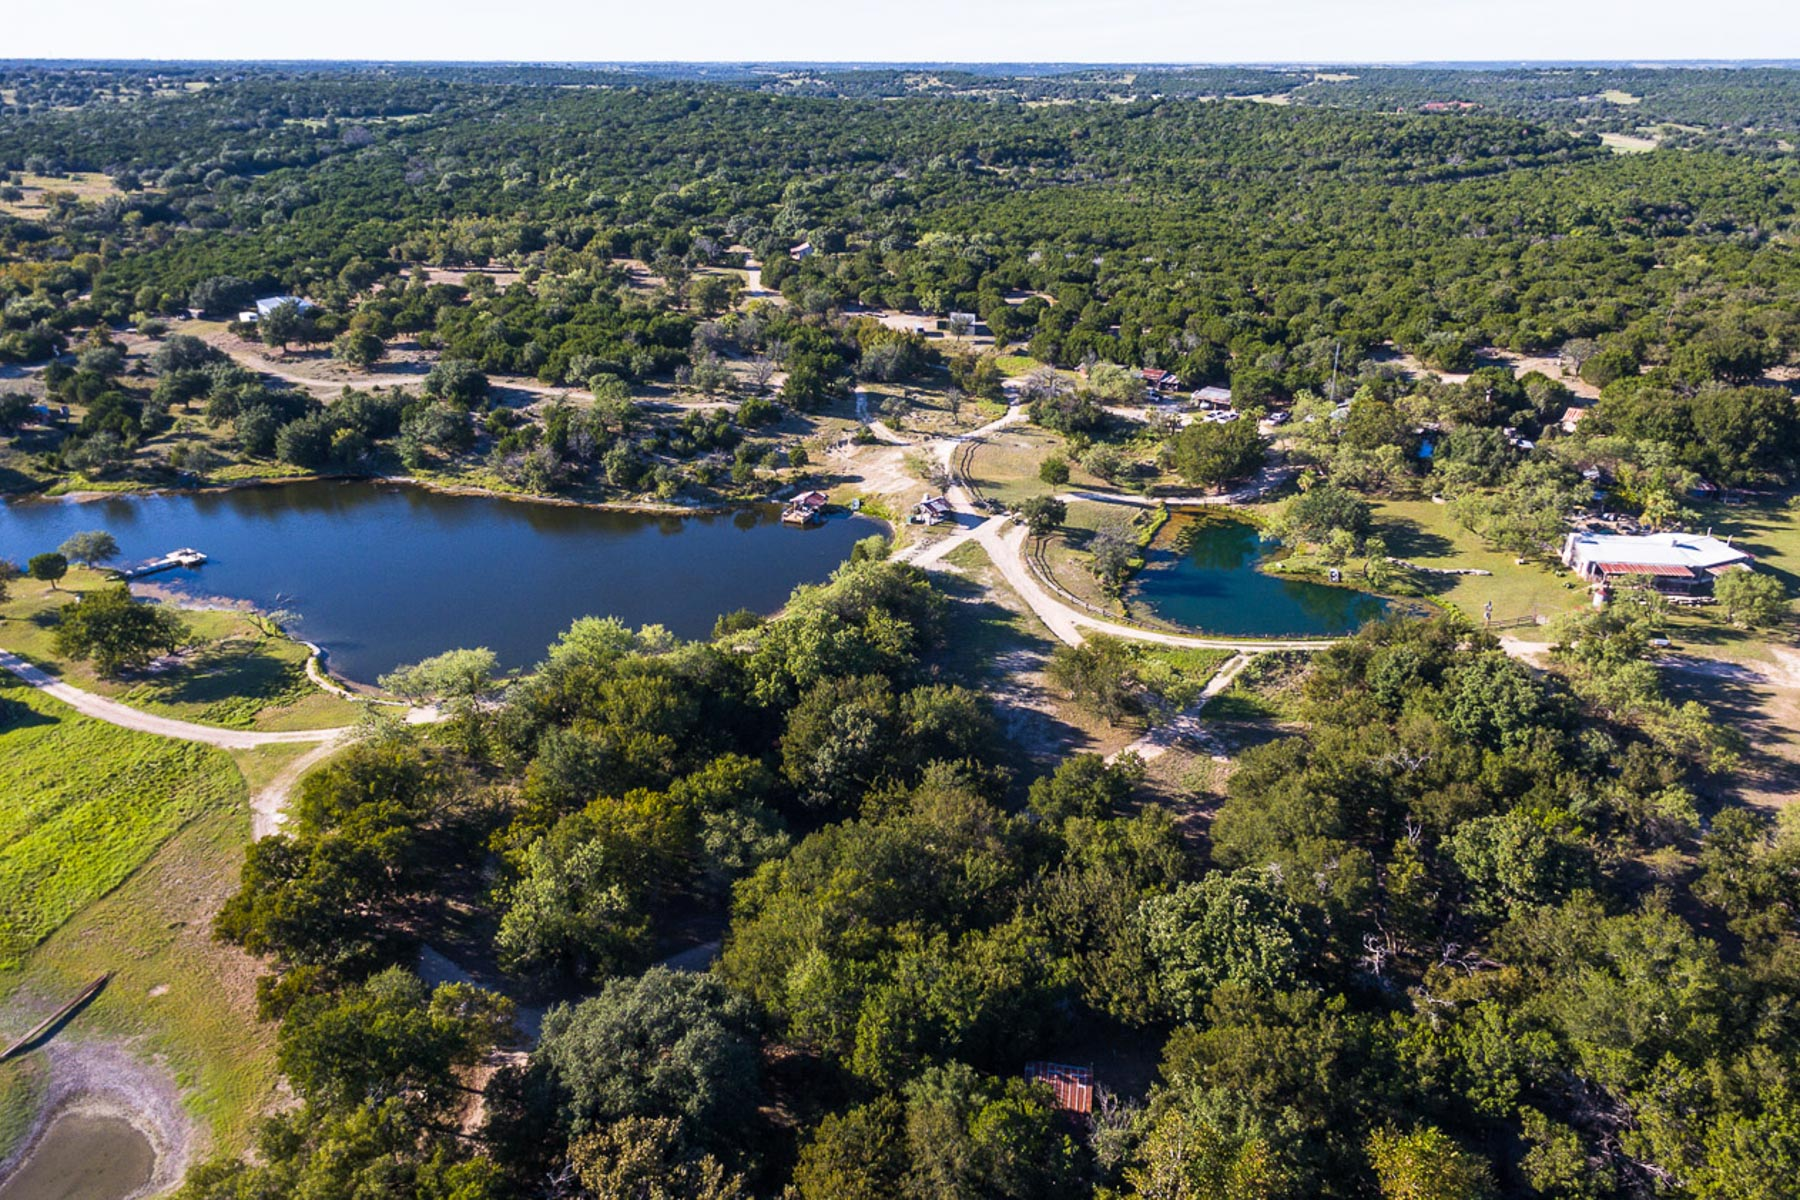 Land for Sale at Pony Creek Ranch 10620 CR 194 Bluff Dale, Texas, 76433 United States